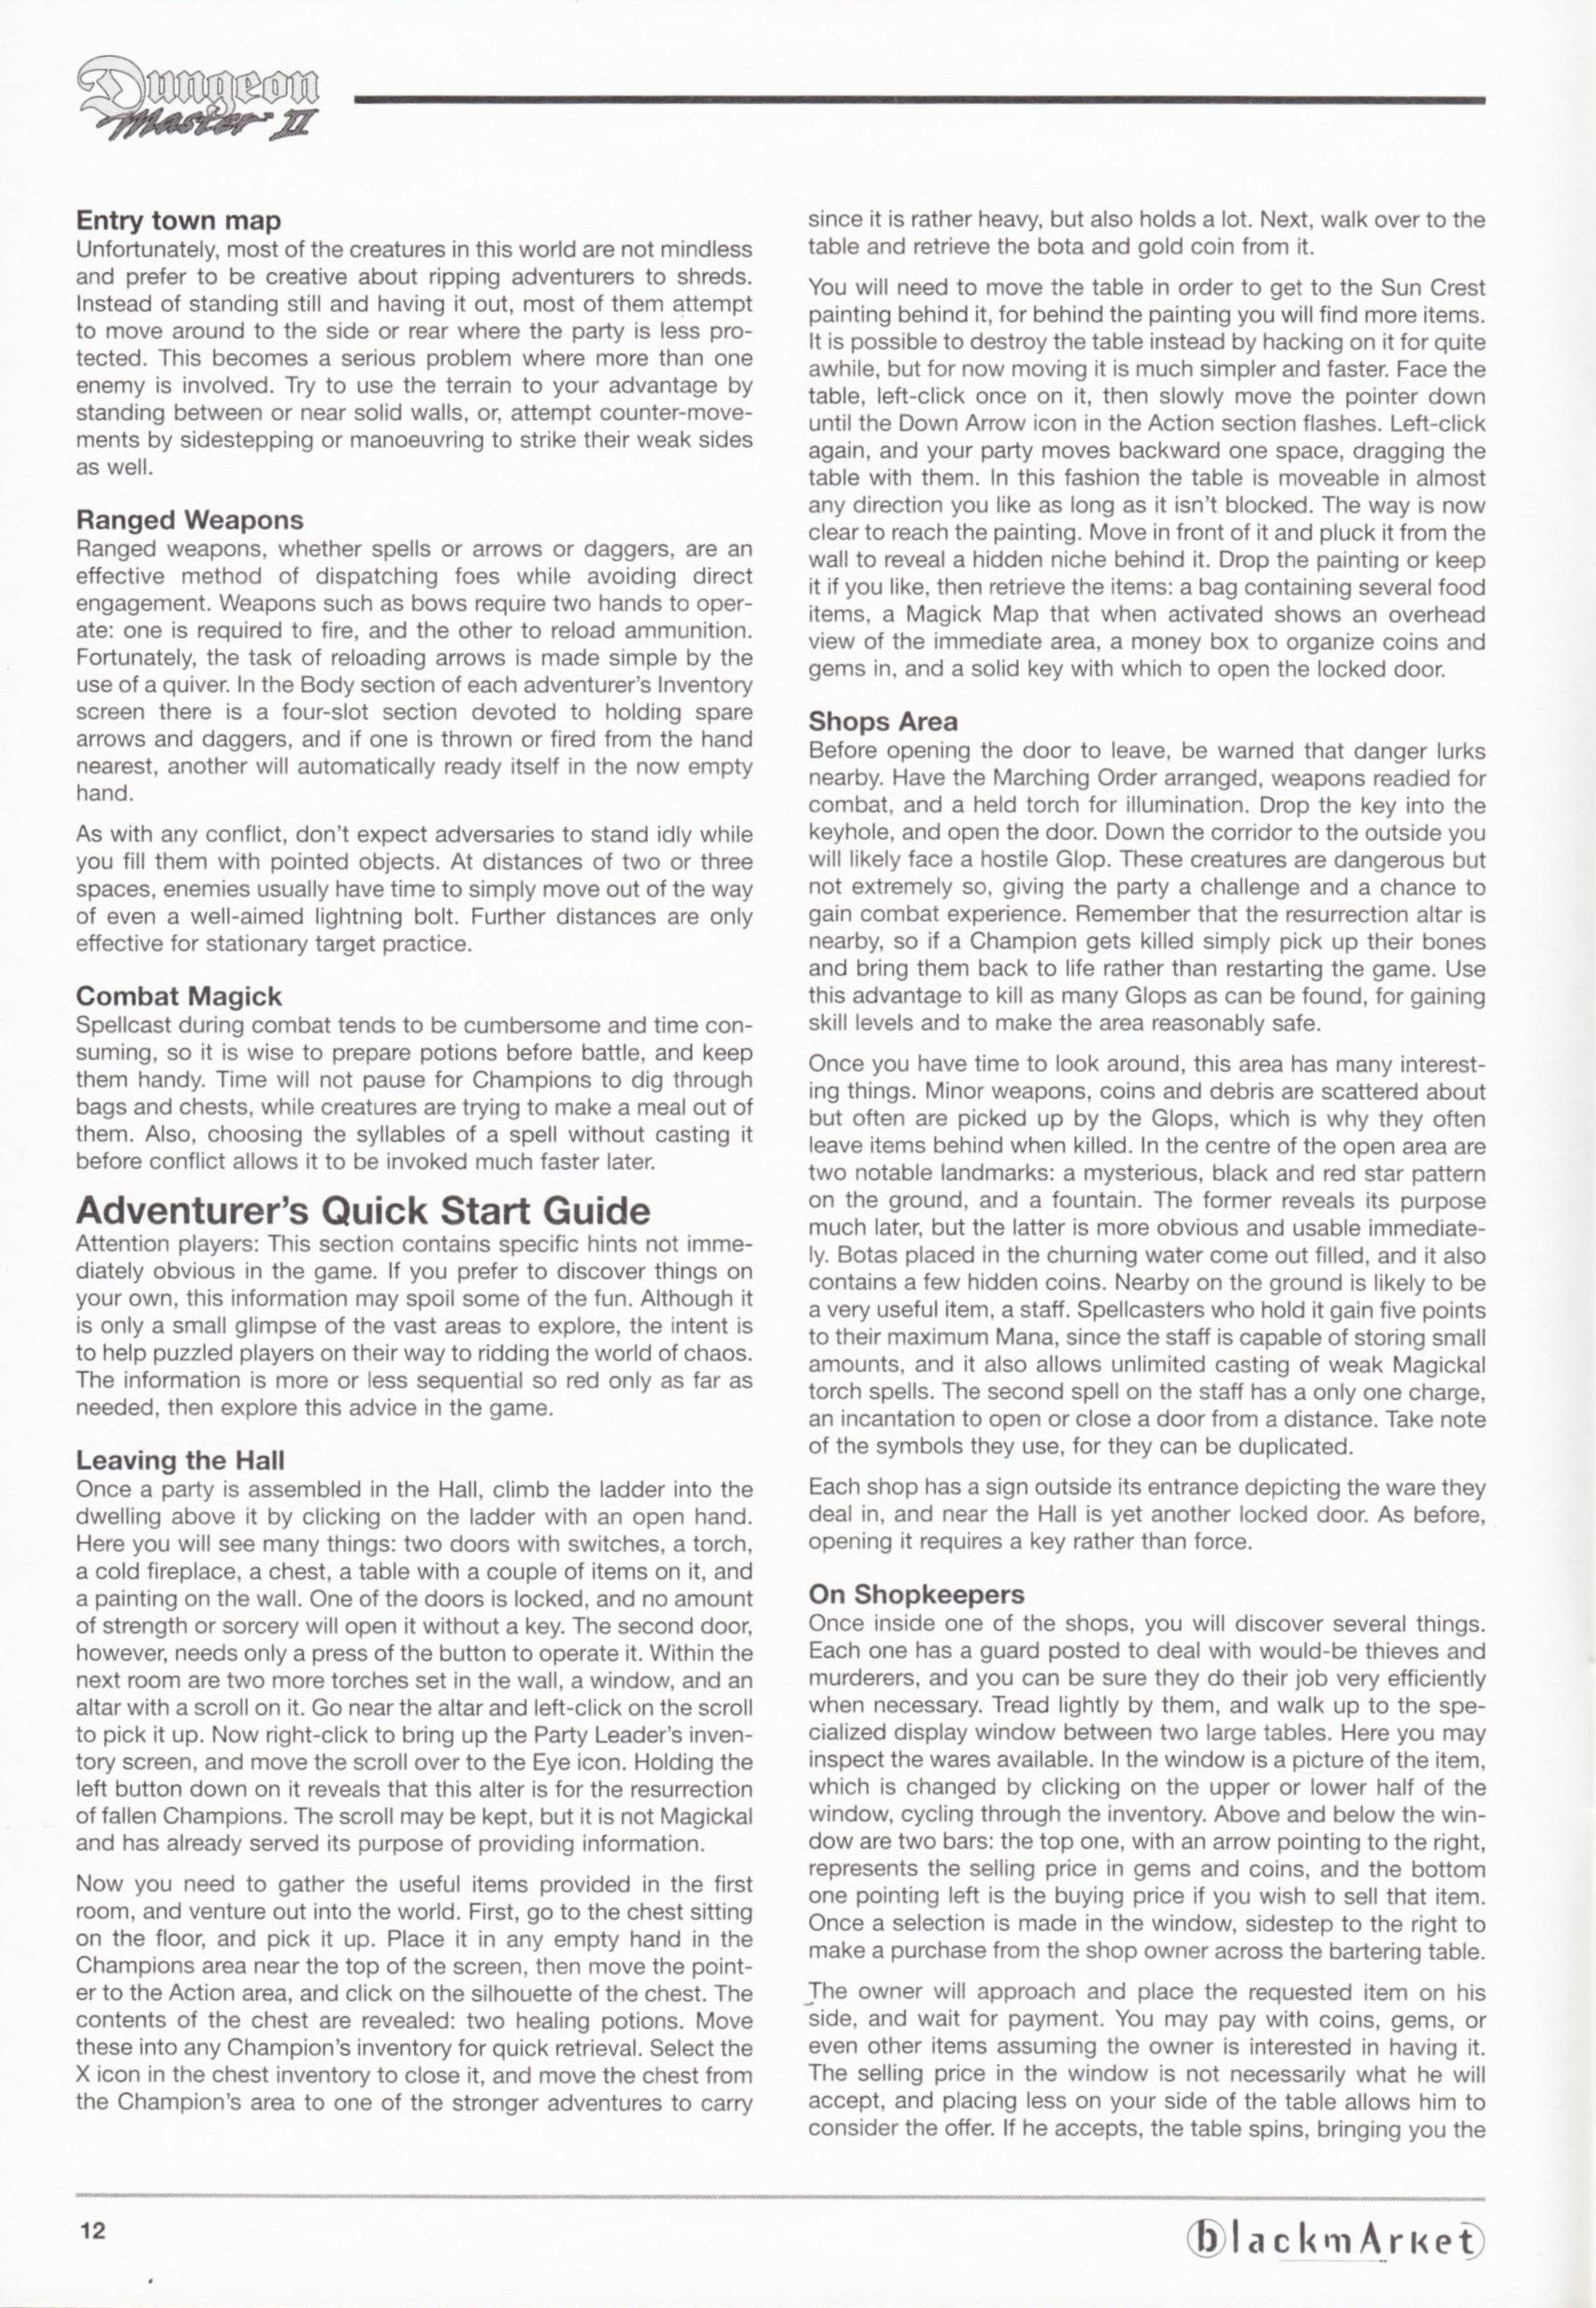 Game - Dungeon Master II - DE - PC - Blackmarket With Manual - Manual - Page 014 - Scan